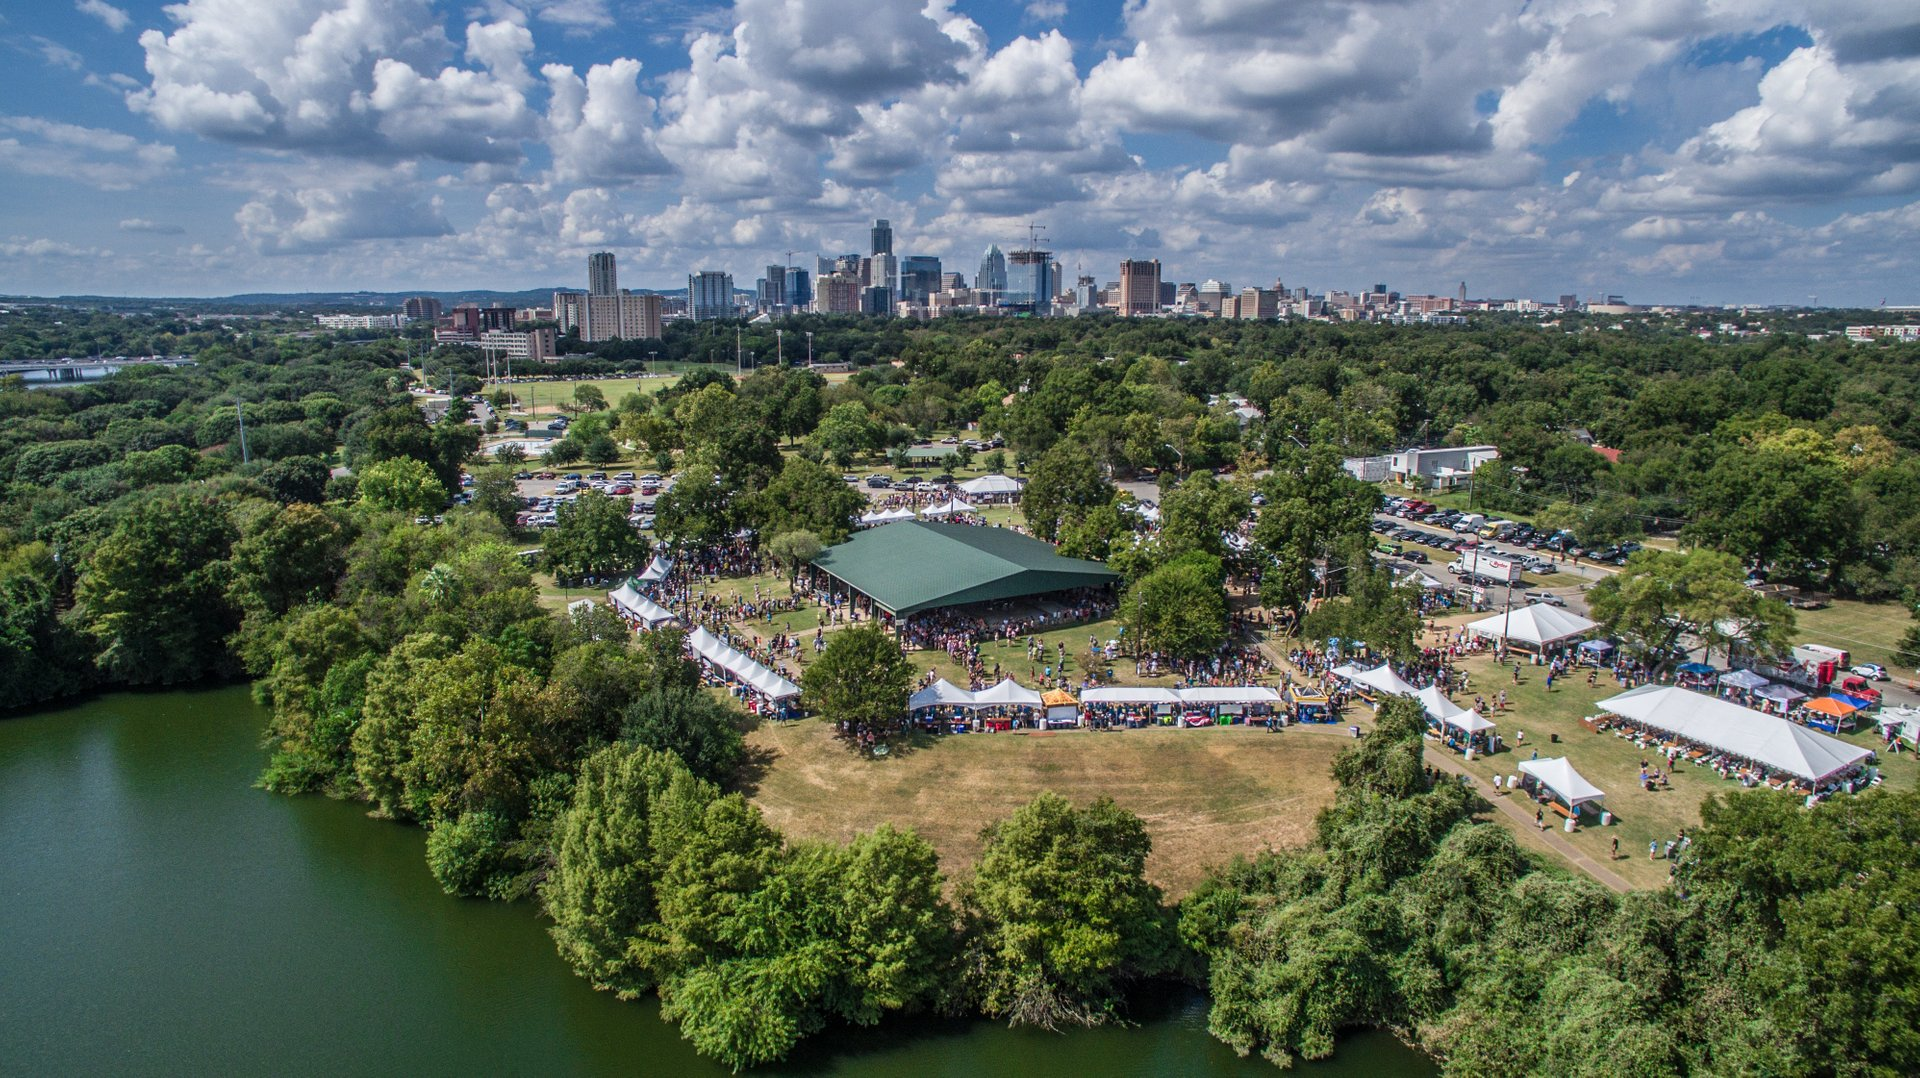 Texas Craft Brewers Festival in Texas 2020 - Best Time